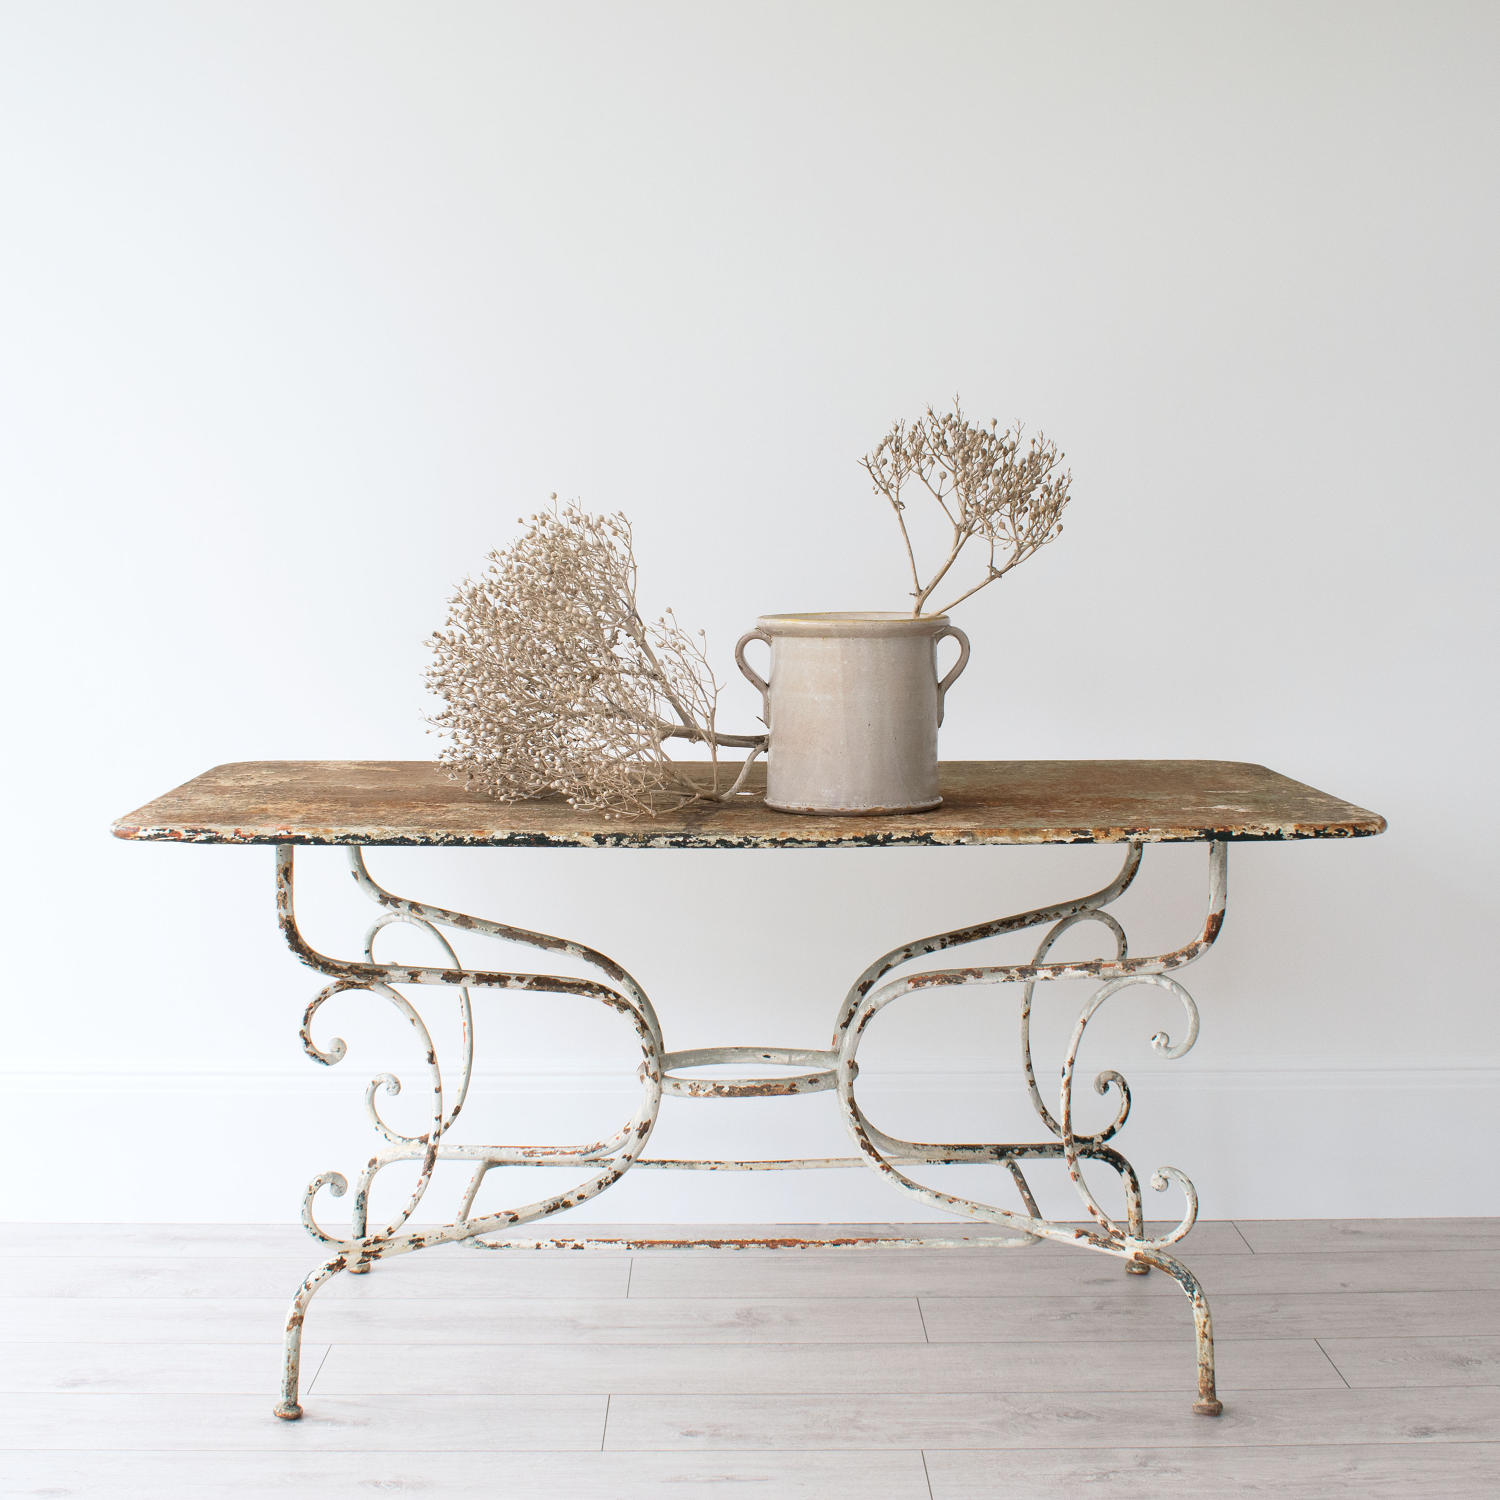 GRAND SCALE 19TH CENTURY FRENCH GARDEN TABLE